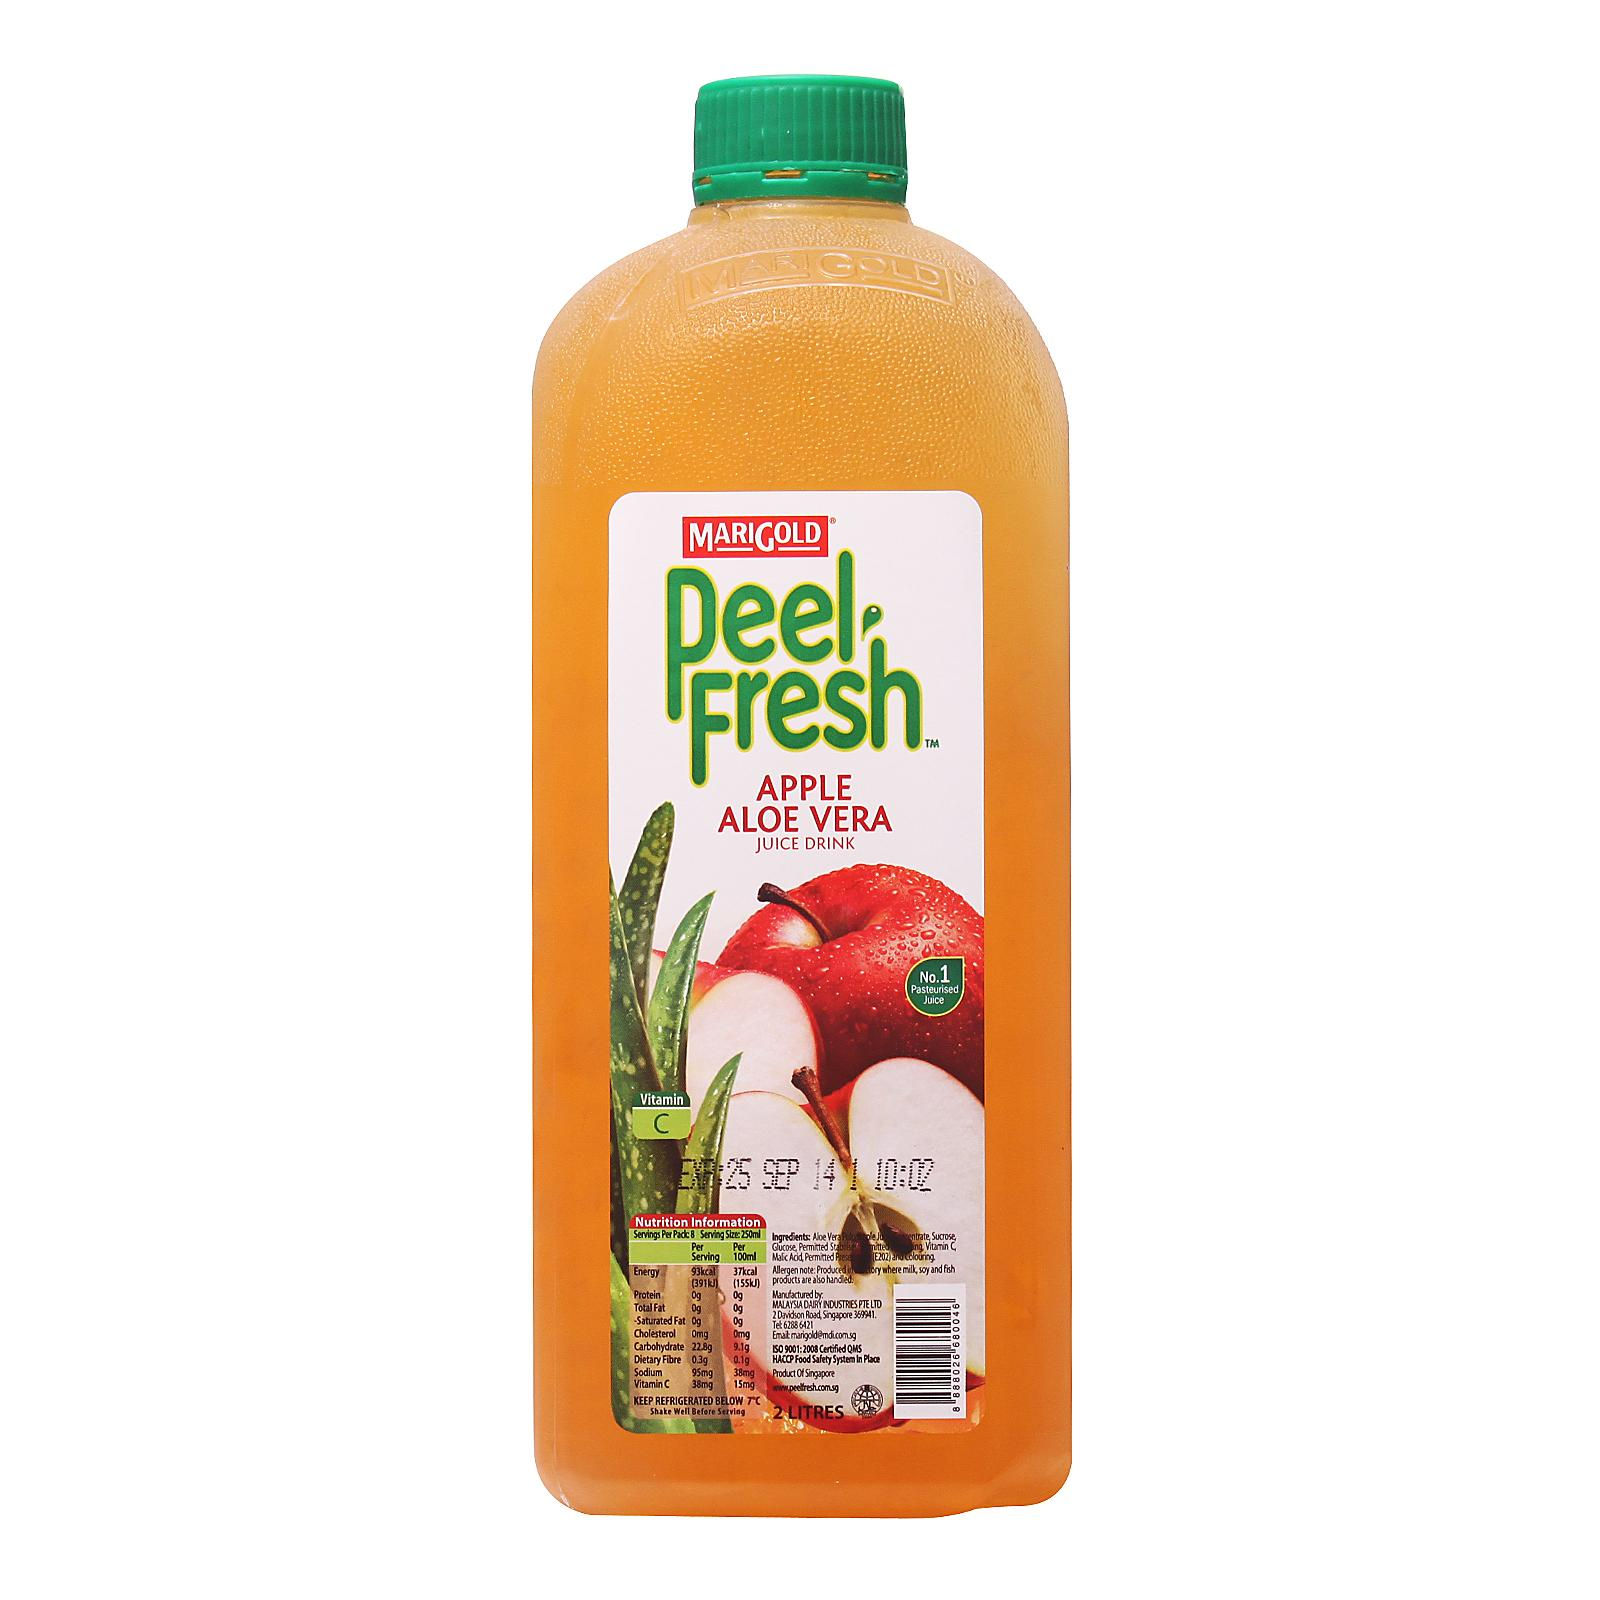 MARIGOLD Peel Fresh Juice Drink - Apple Aloe Vera 2L